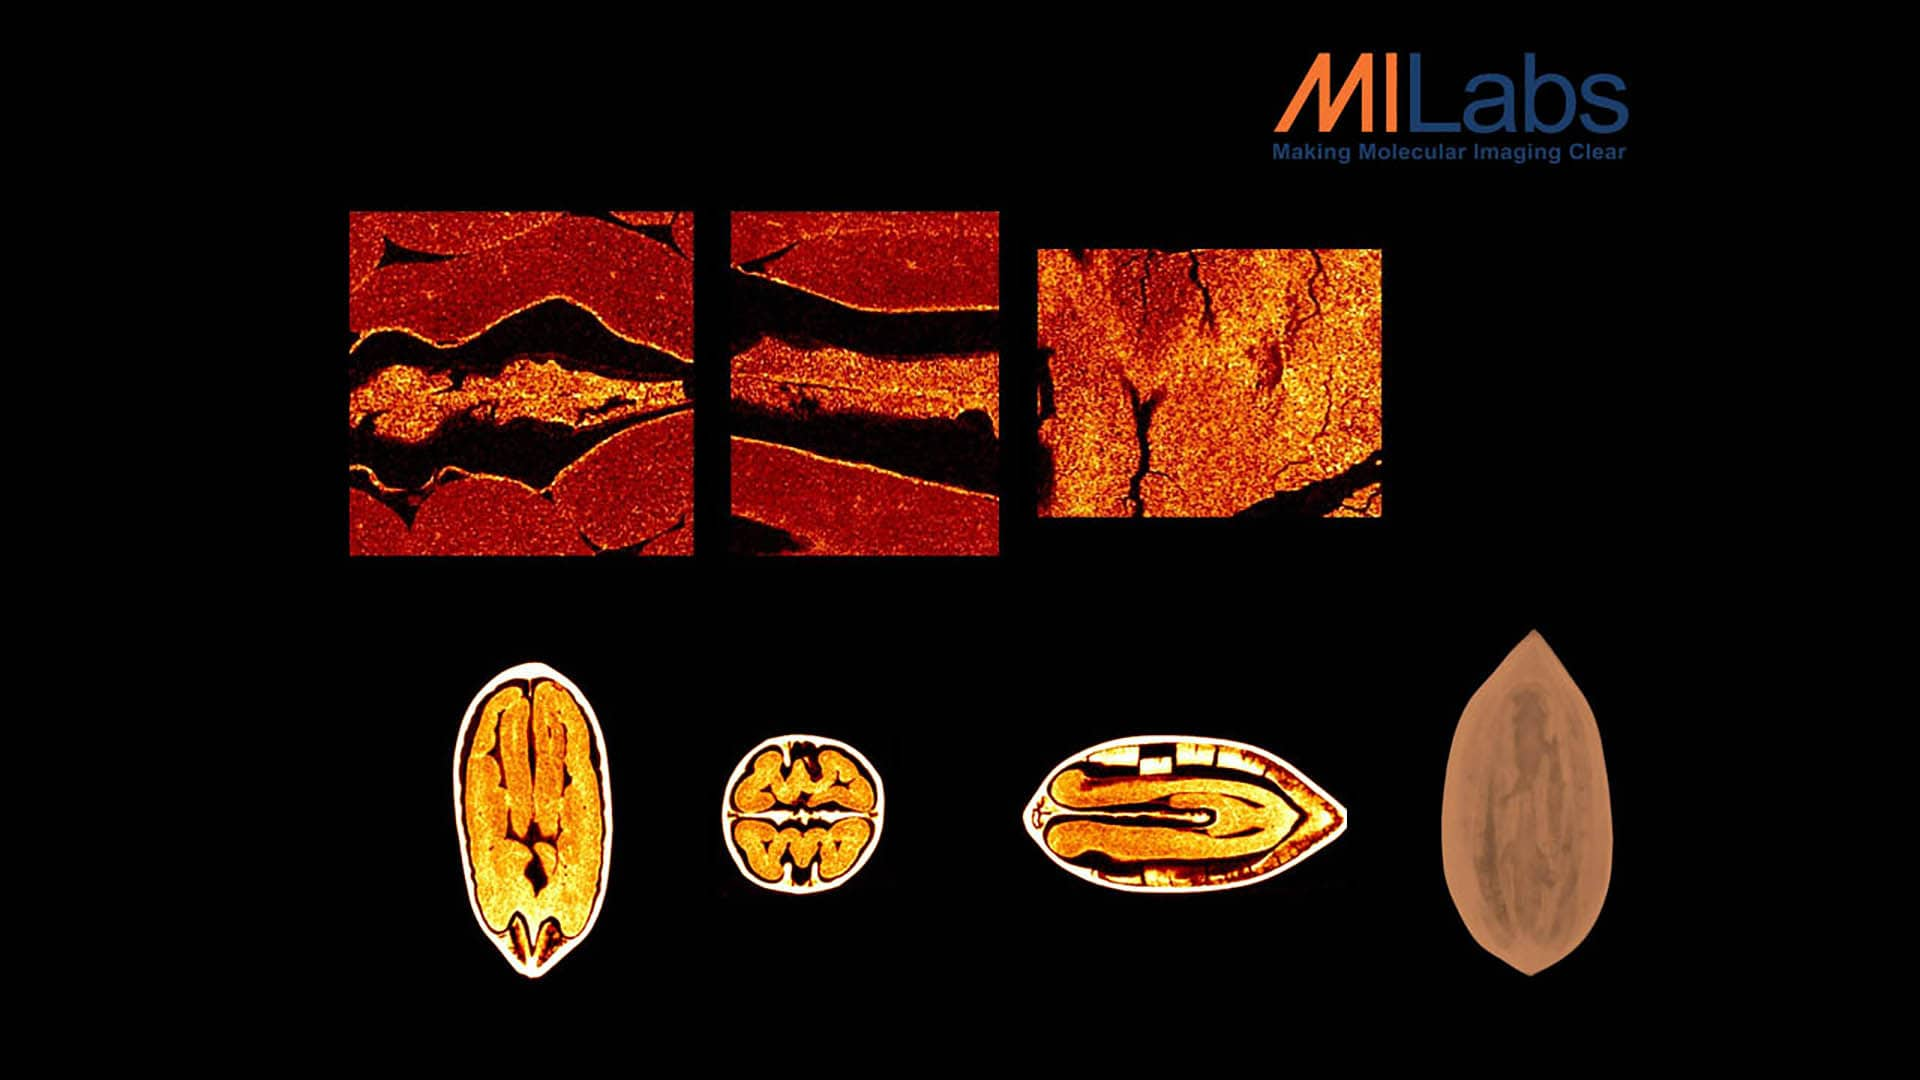 micro-CT imaging of nuts